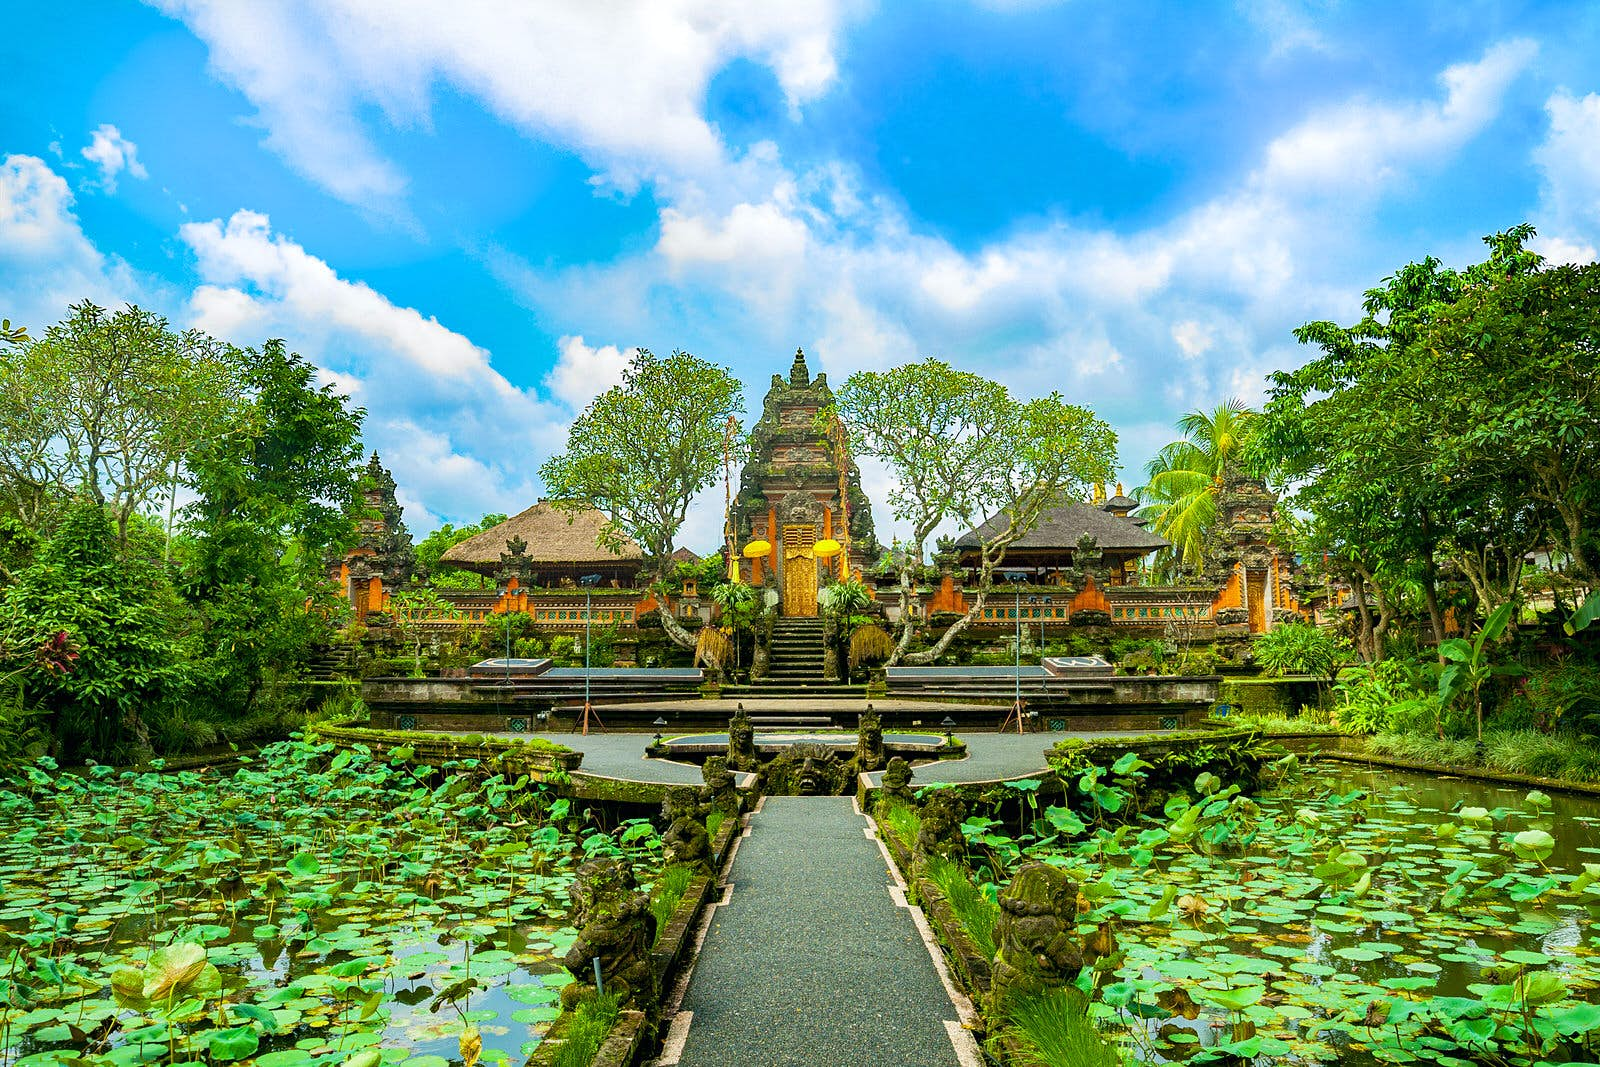 A paved path leads across a lotus covered pond in front of the towering temple of Pura Taman Saraswati in Ubud, Bali; on either side of the carved stone tower are two pyramid shaped roofs over open-air areas